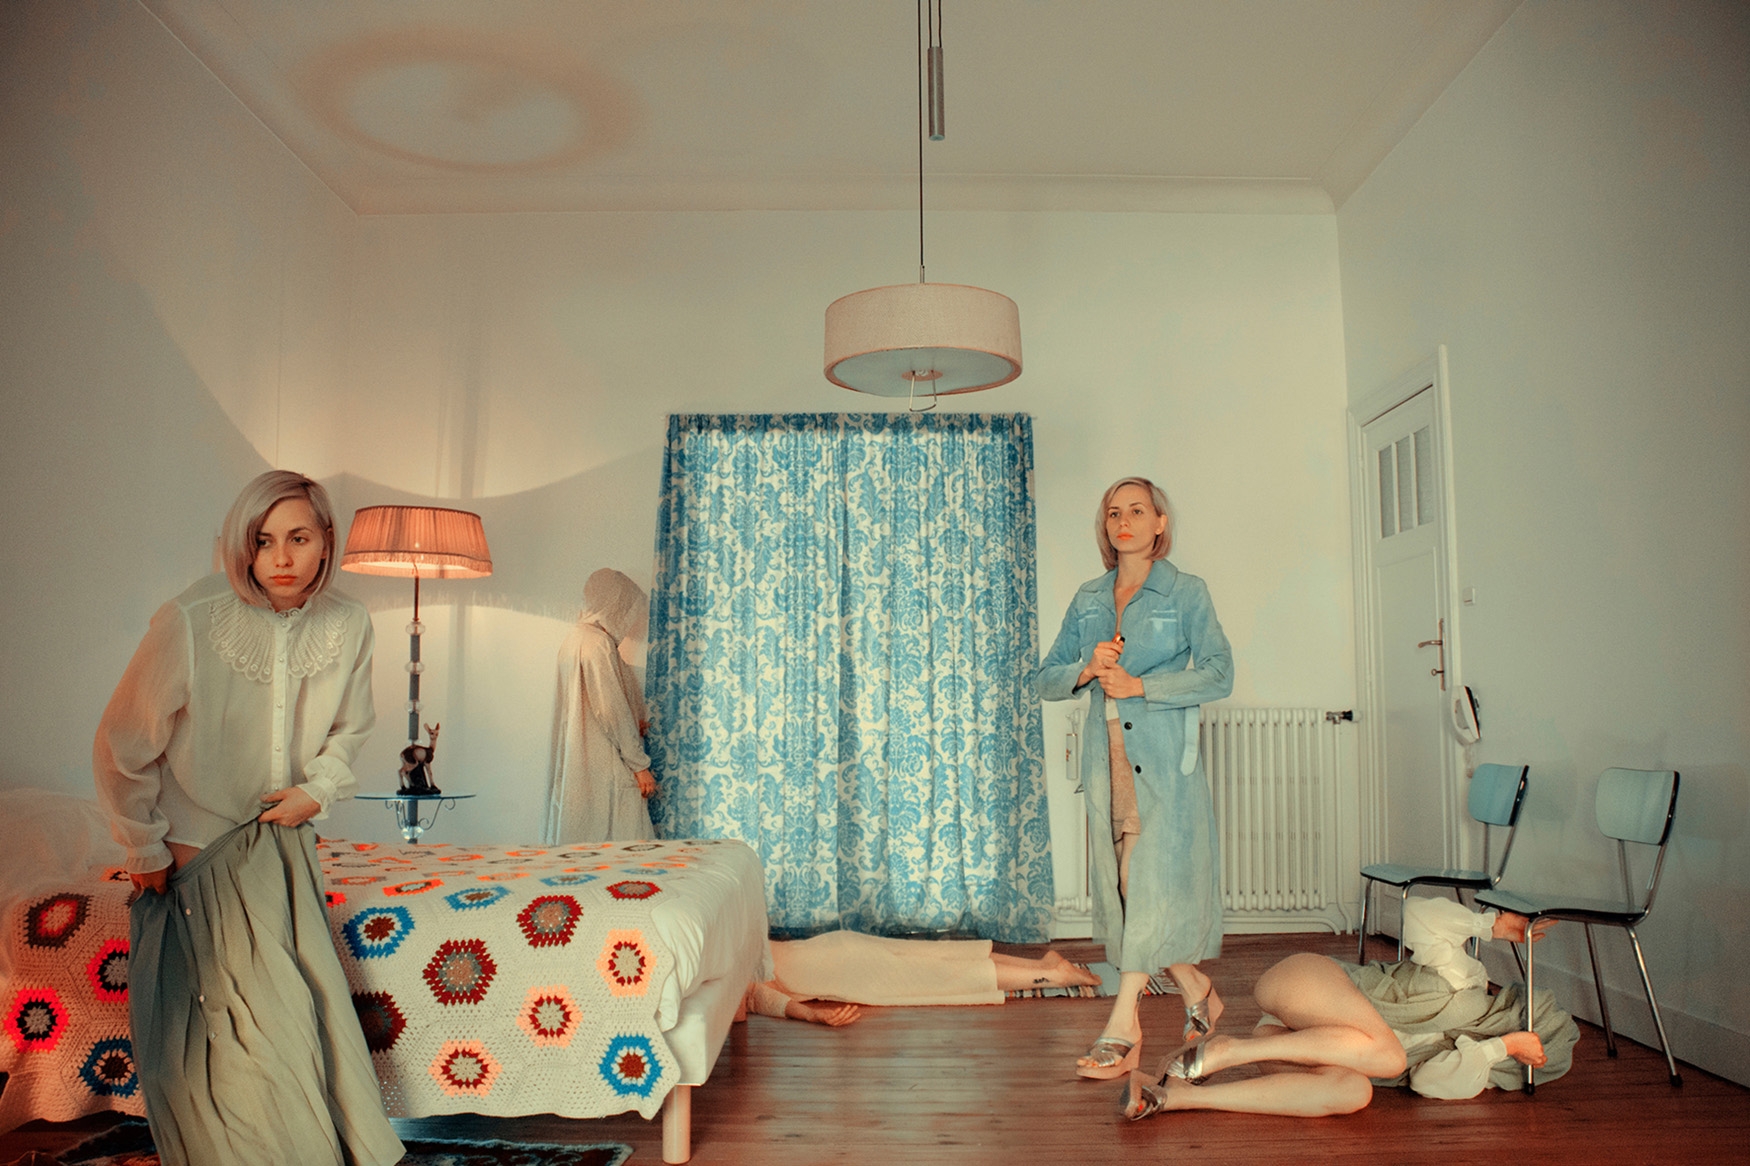 Whodunnit (The Bedroom), 2012